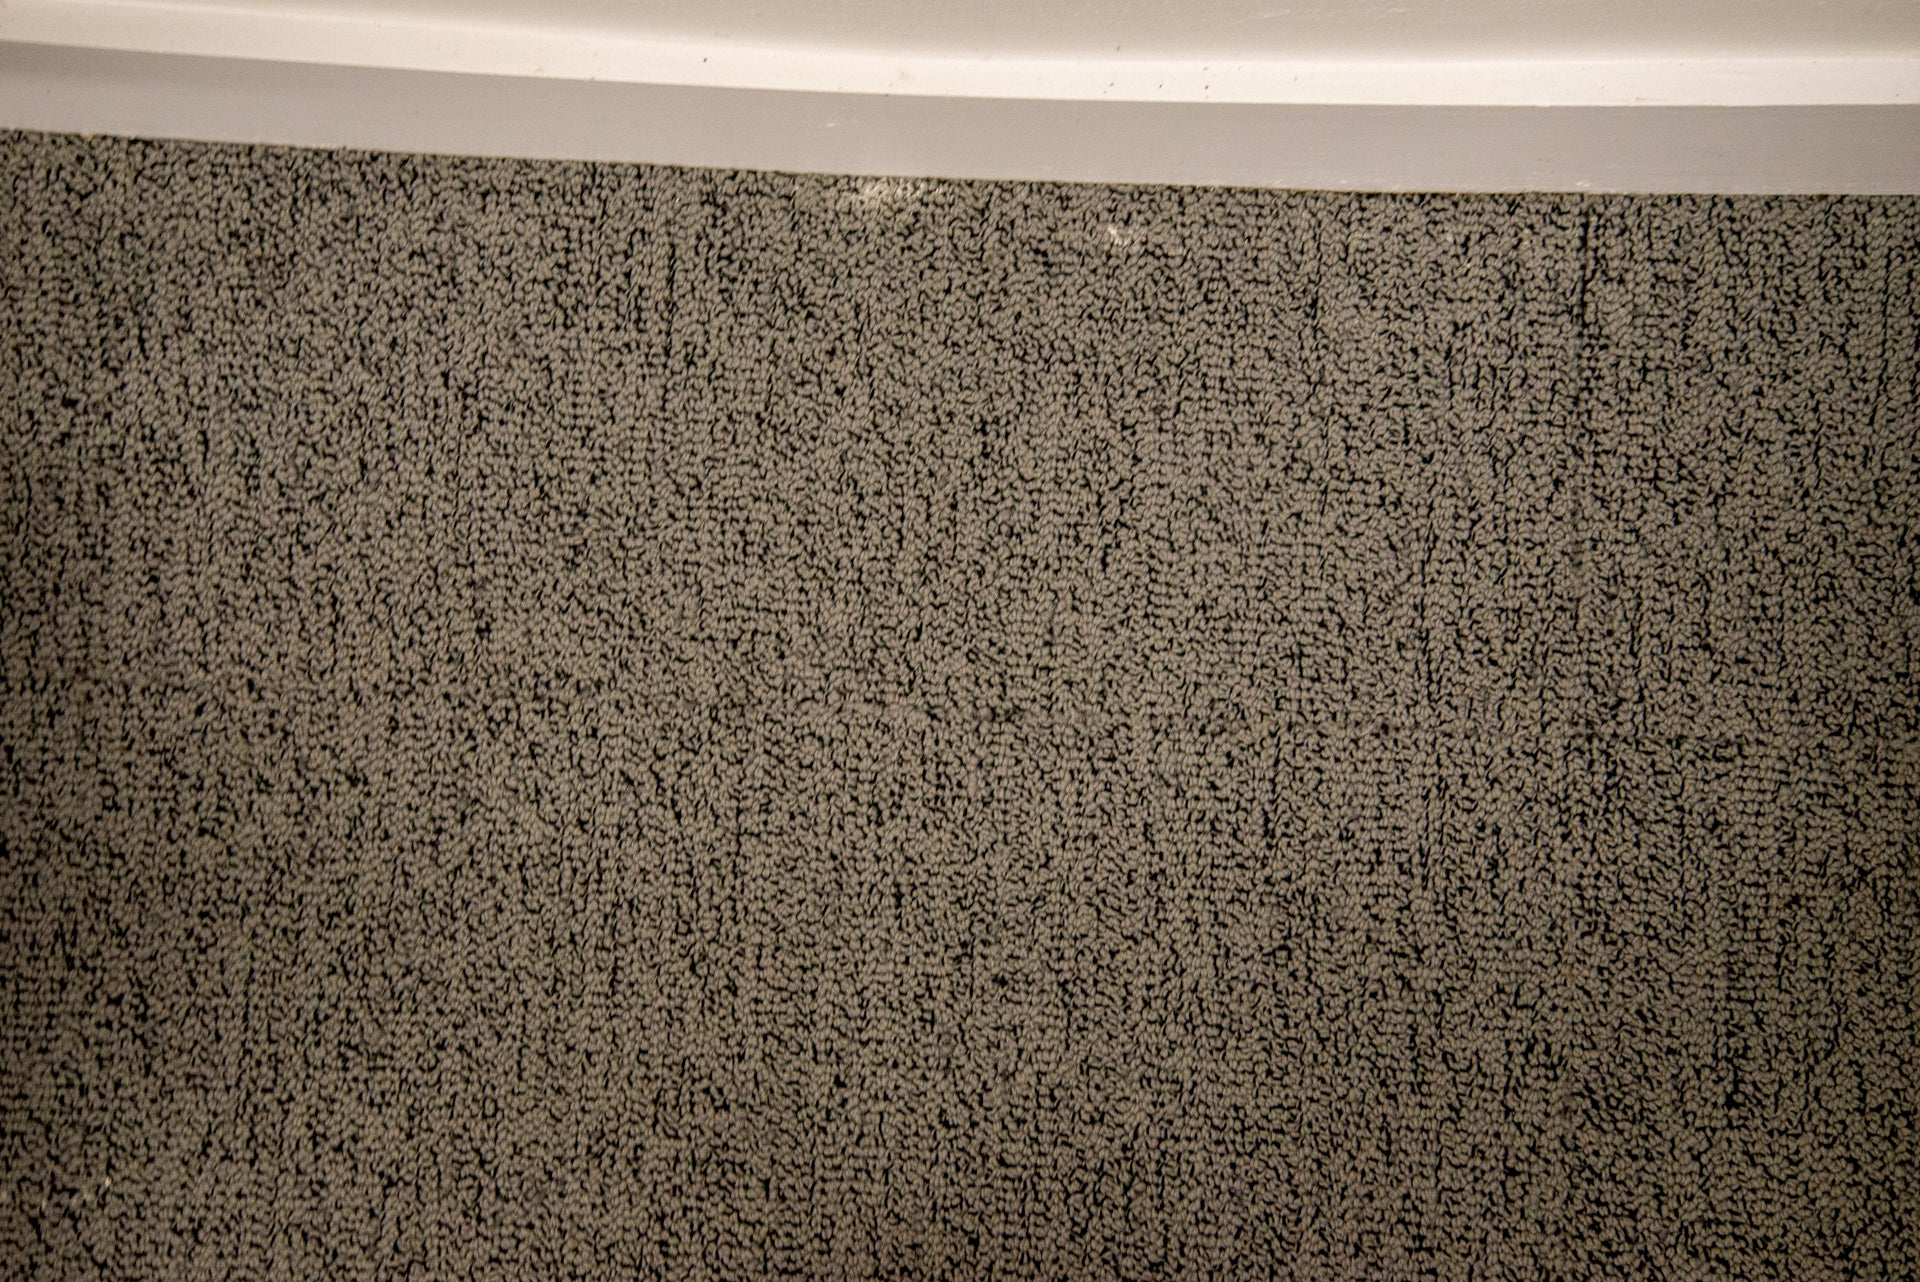 Hoover H-Free 300 dirty edge cleaned on Turbo